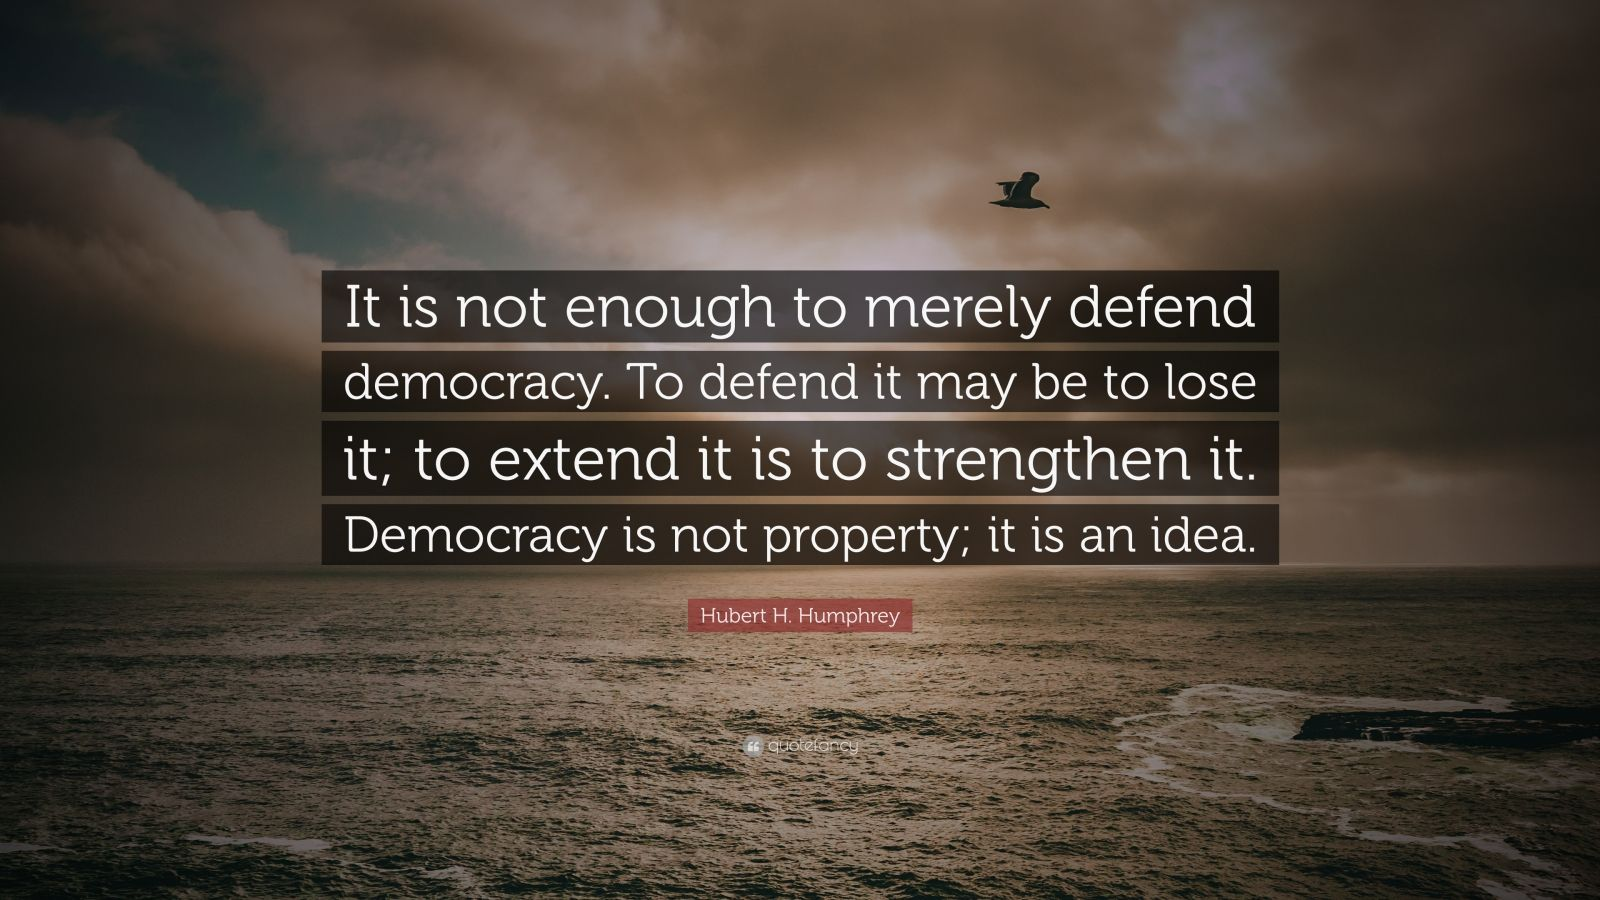 "Hubert H. Humphrey Quote: ""It is not enough to merely defend democracy. To defend it may be to lose it; to extend it is to strengthen it. Democracy is not property; it is an idea."""